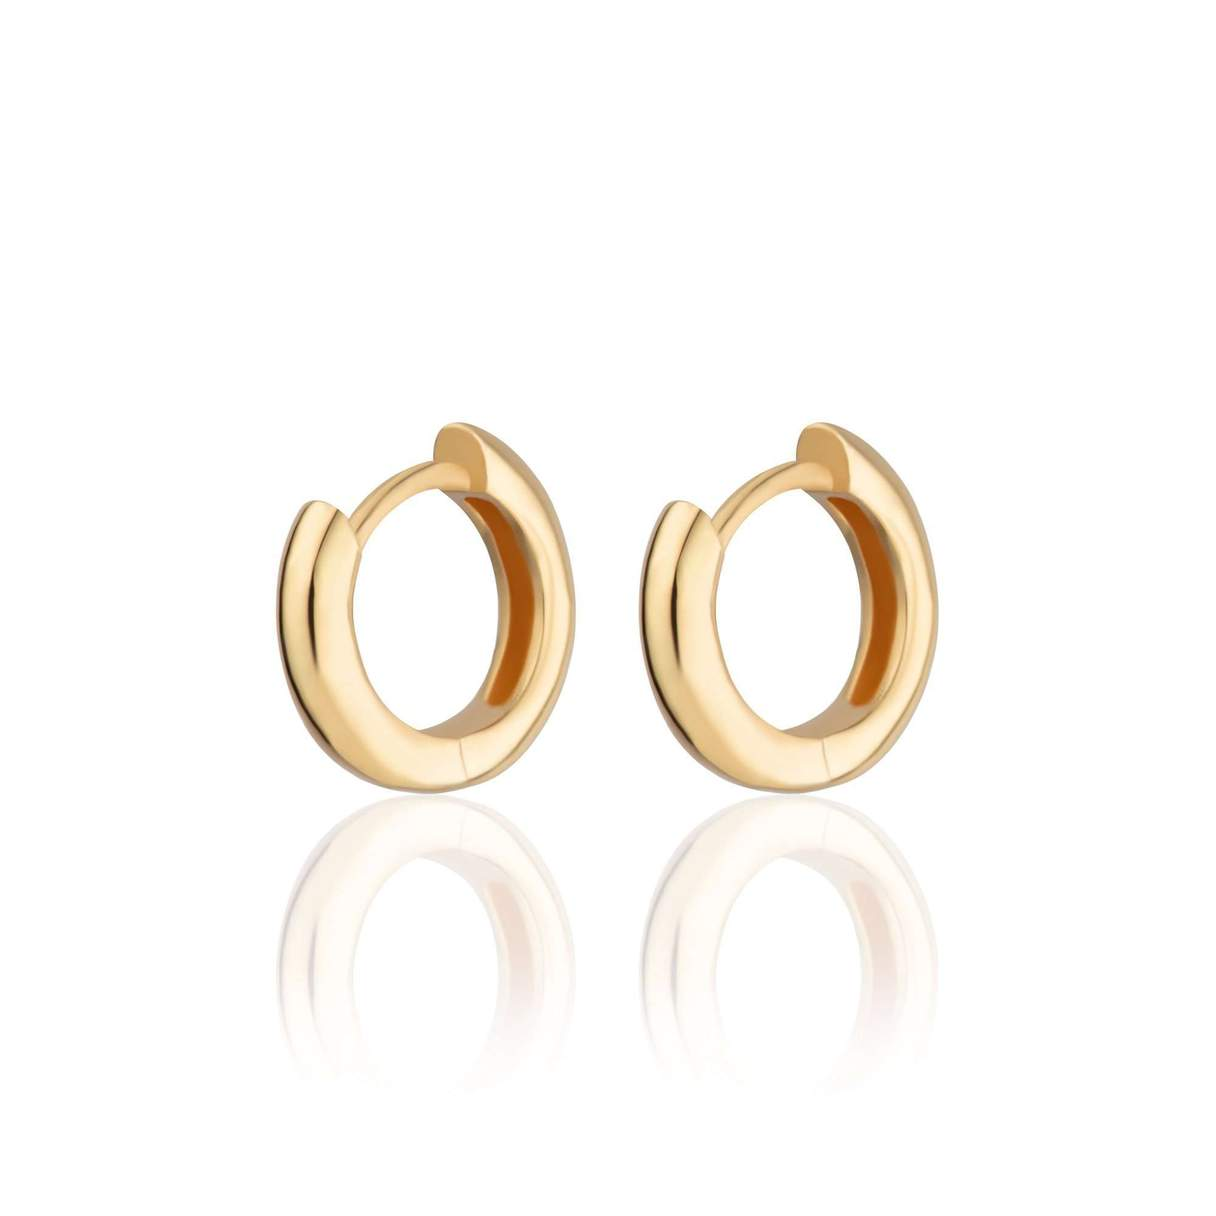 Huggie Hoop Earrings - Gold Plated